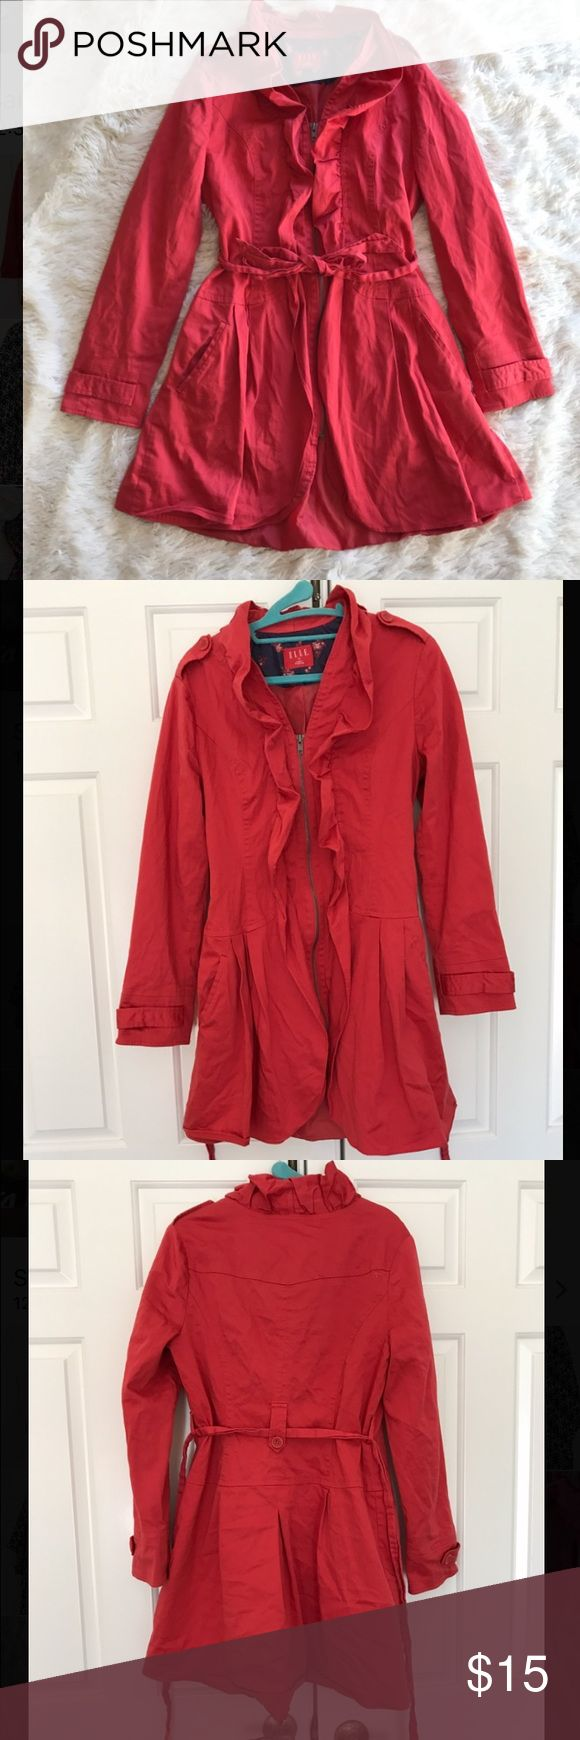 """Coral Jacket Coral jacket that zippers and ties in the front. 29"""" long, previously loved but in great condition. Elle Jackets & Coats"""